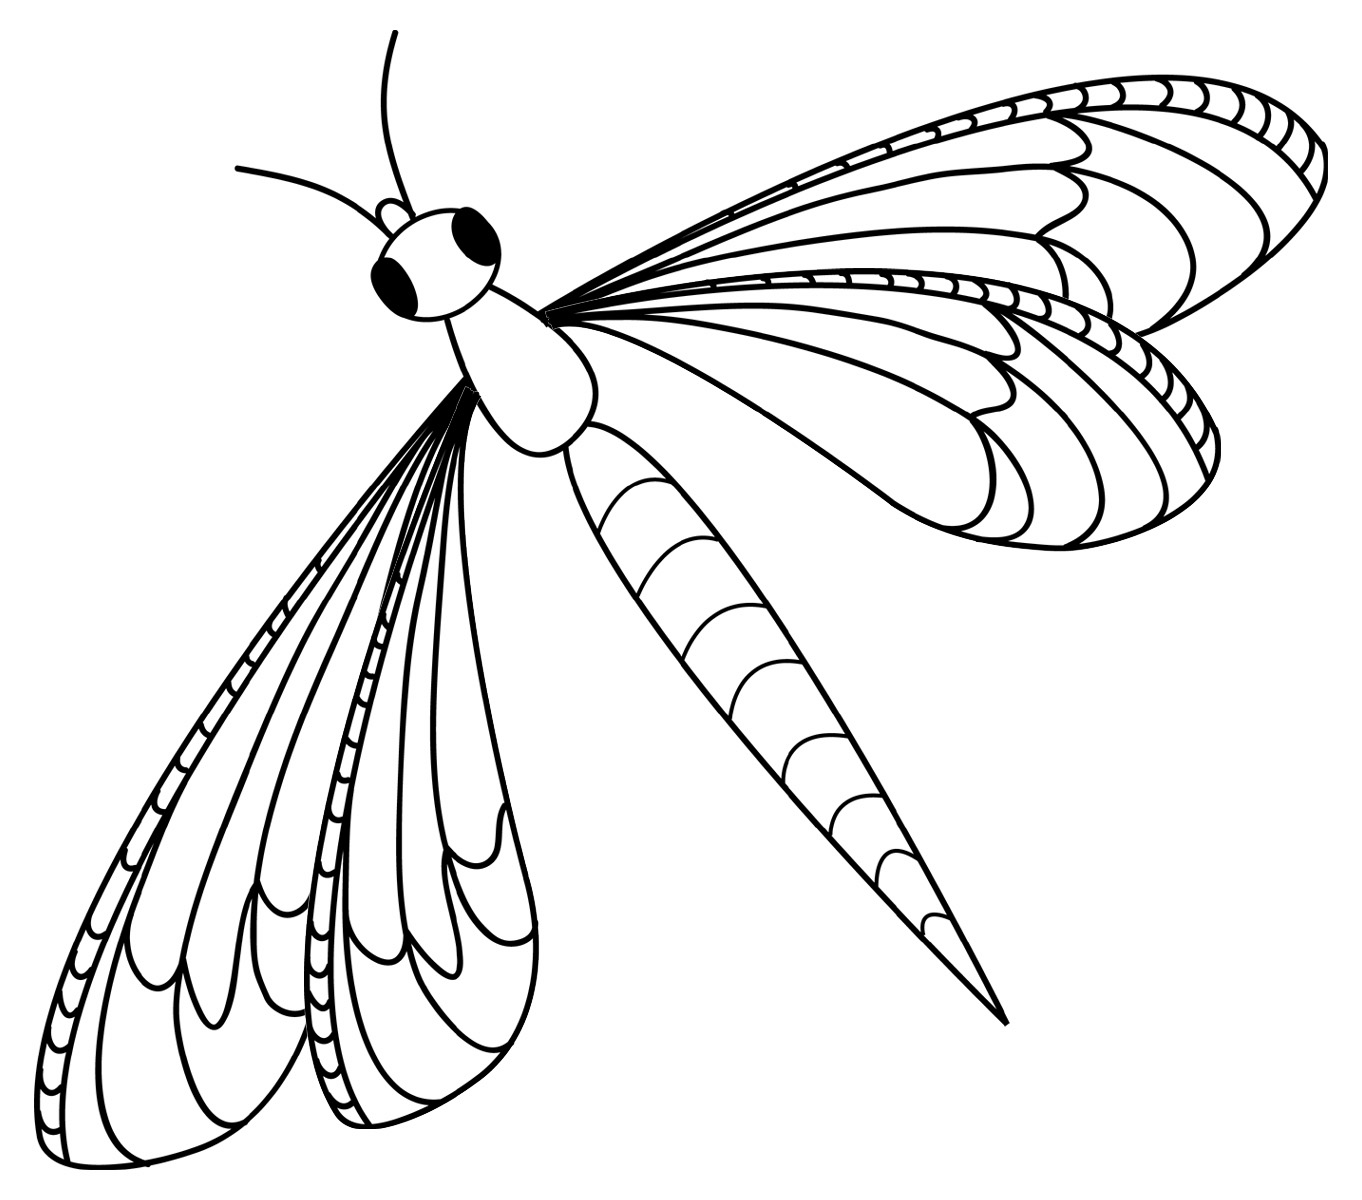 dragonfly colouring page free printable dragonfly coloring pages for kids animal dragonfly colouring page